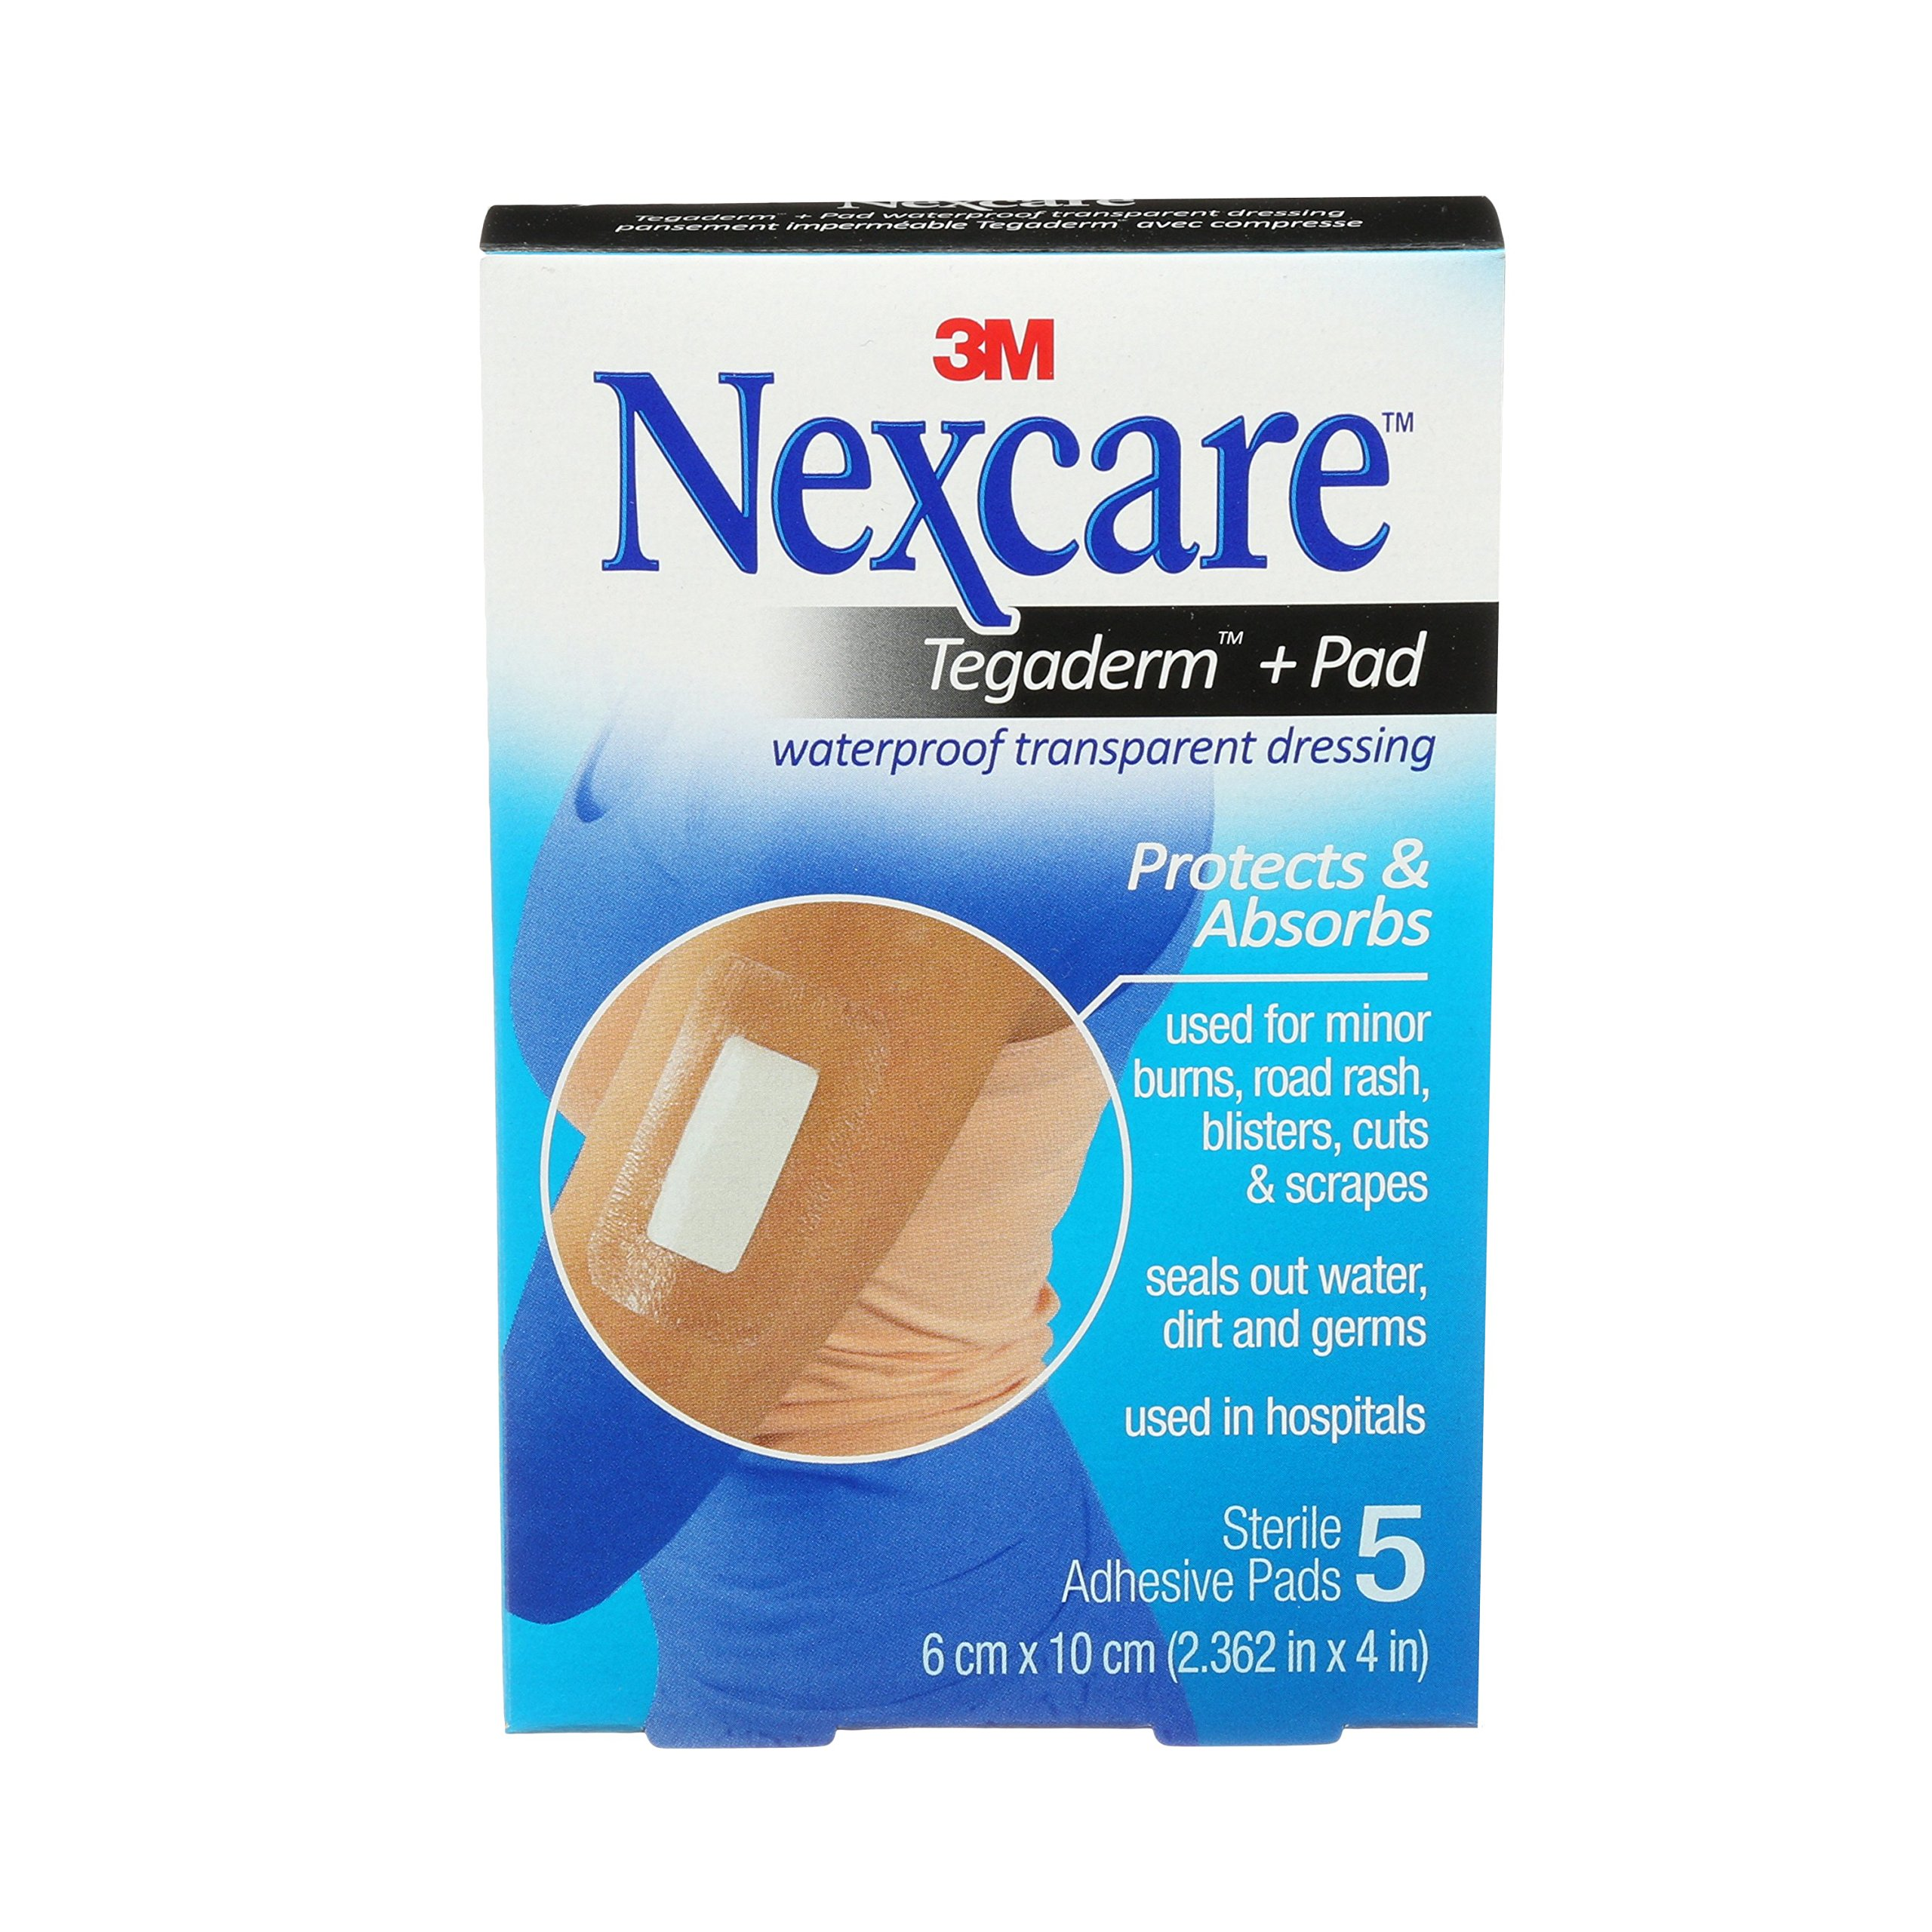 Nexcare Tegaderm + Pad Waterproof Transparent Dressing, 2.375 x 4 inches, 5 Count (Pack of 4)